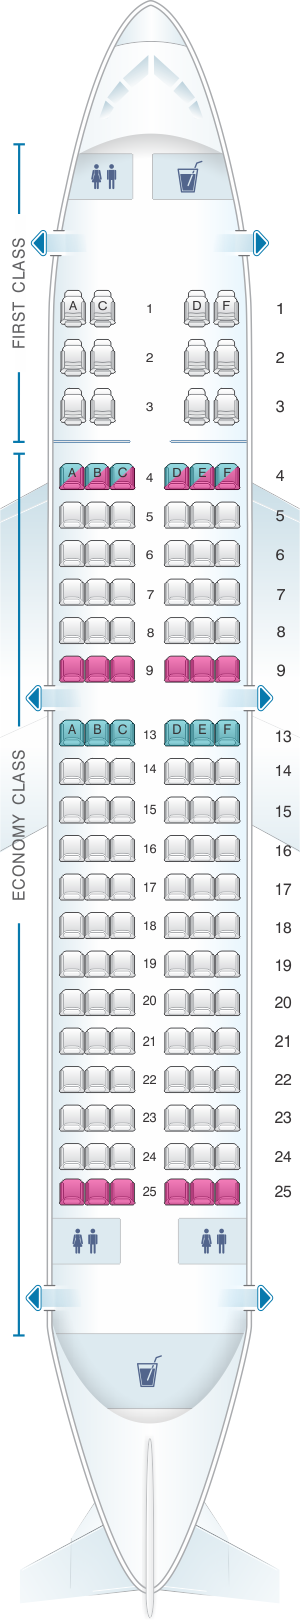 Seat map for Sun Country Airlines Boeing B737 700 126pax